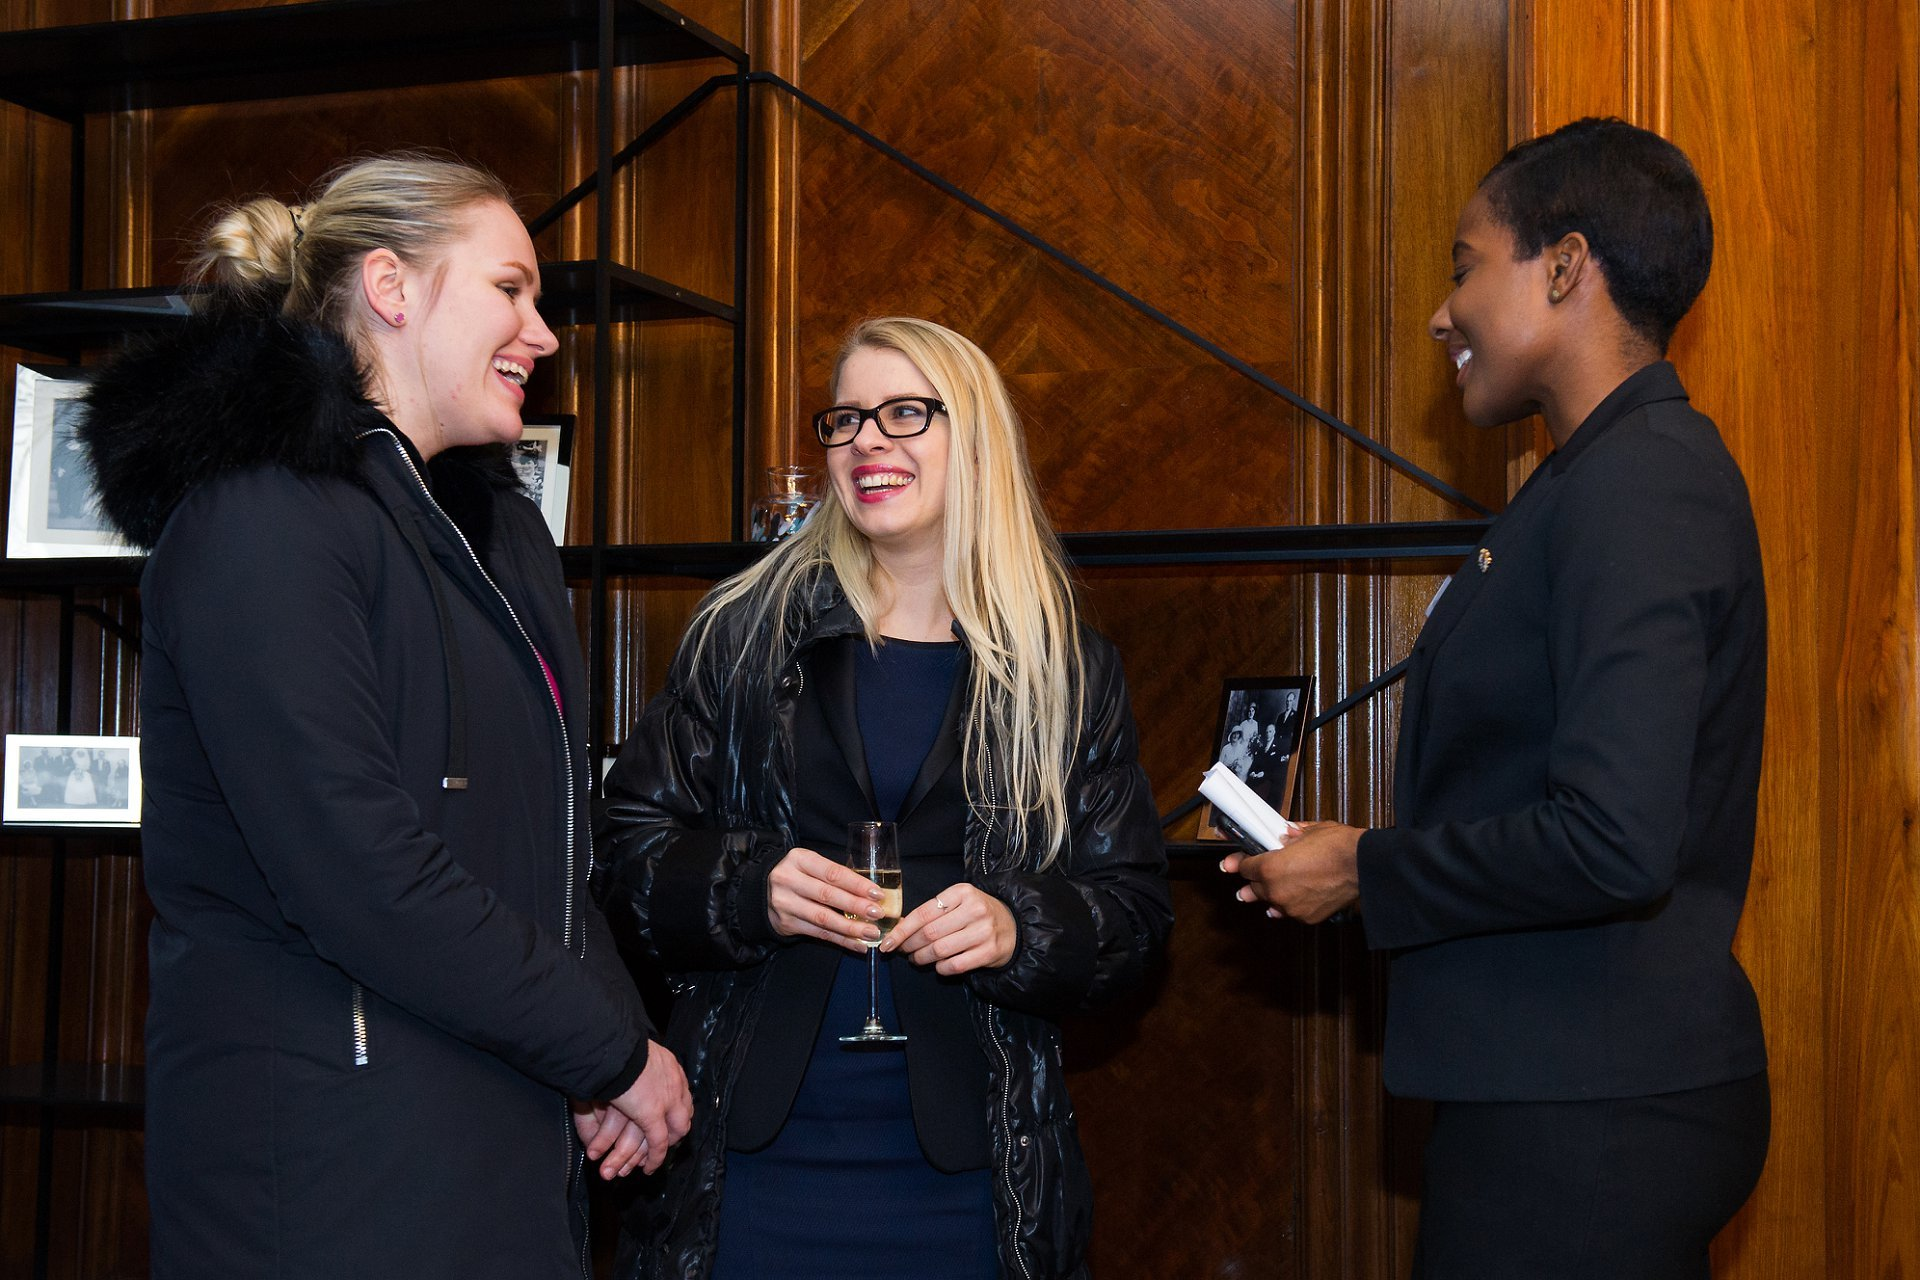 Wedding suppliers talk to a Westminster Registrar during the Marylebone Town Hall reopening in the newly refurbished Marylebone Room